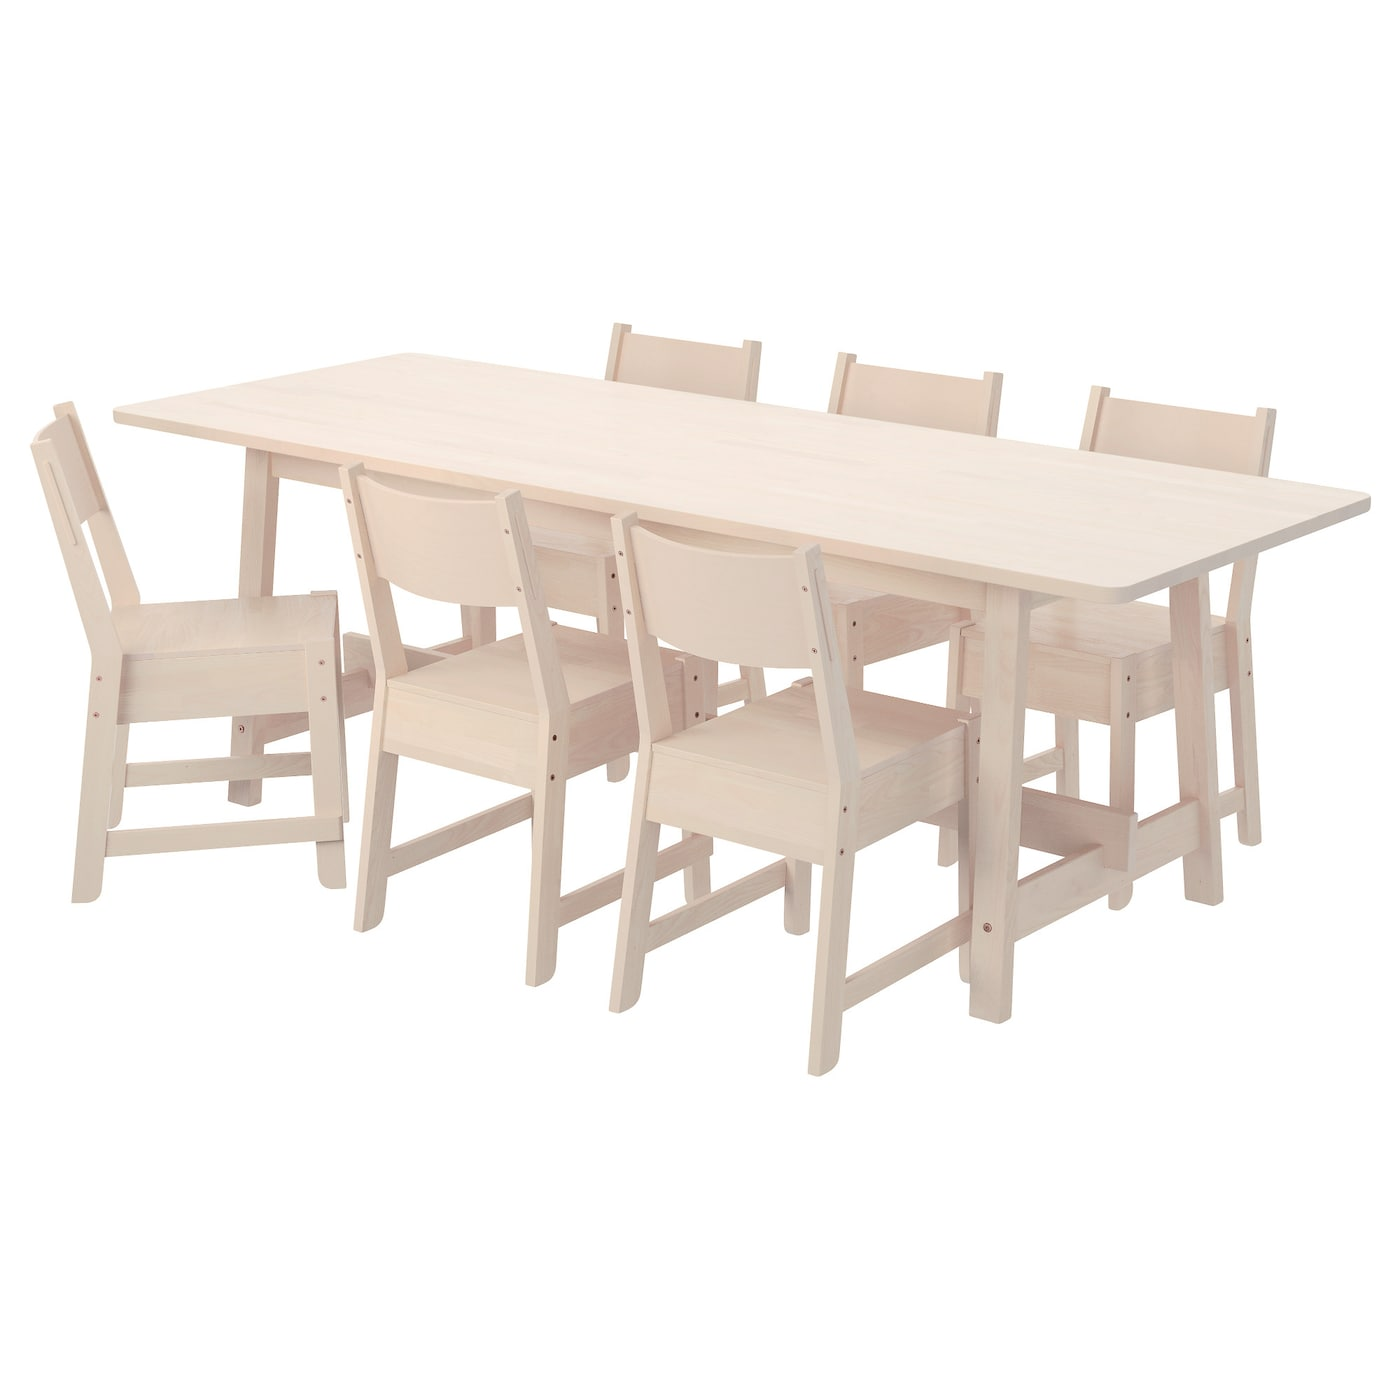 Ordinaire IKEA NORRÅKER/NORRÅKER Table And 6 Chairs